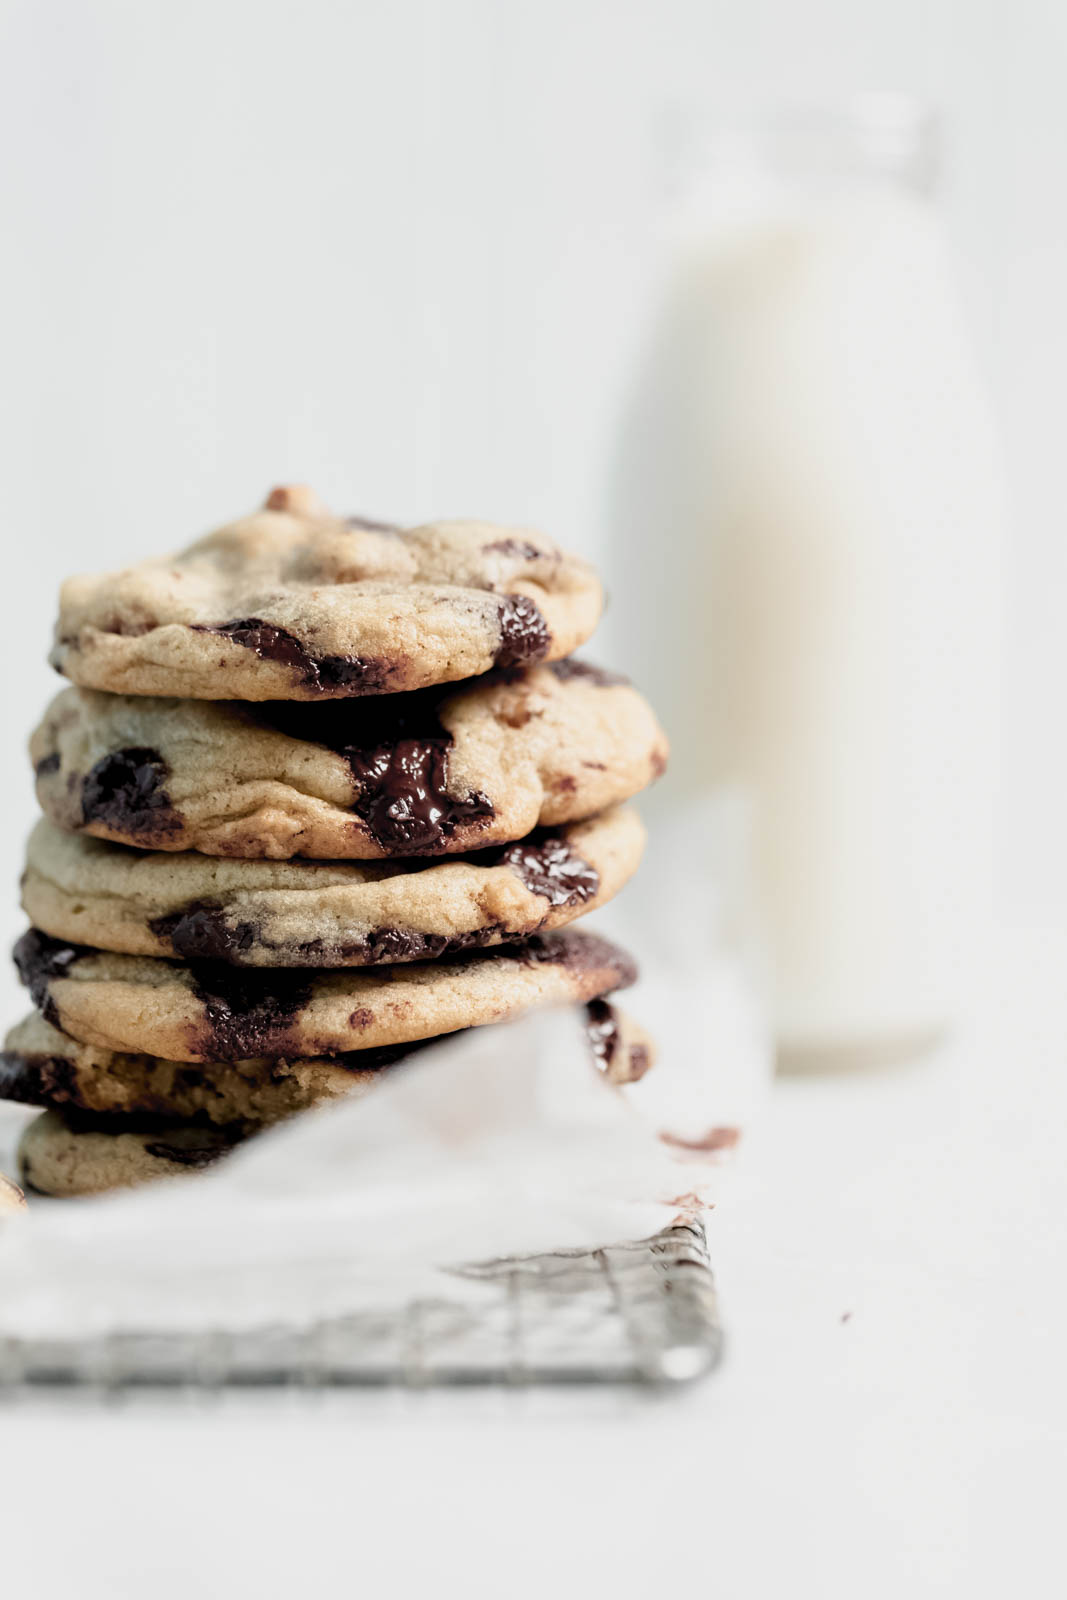 Candied Walnut Chocolate Chip Cookies in a stack